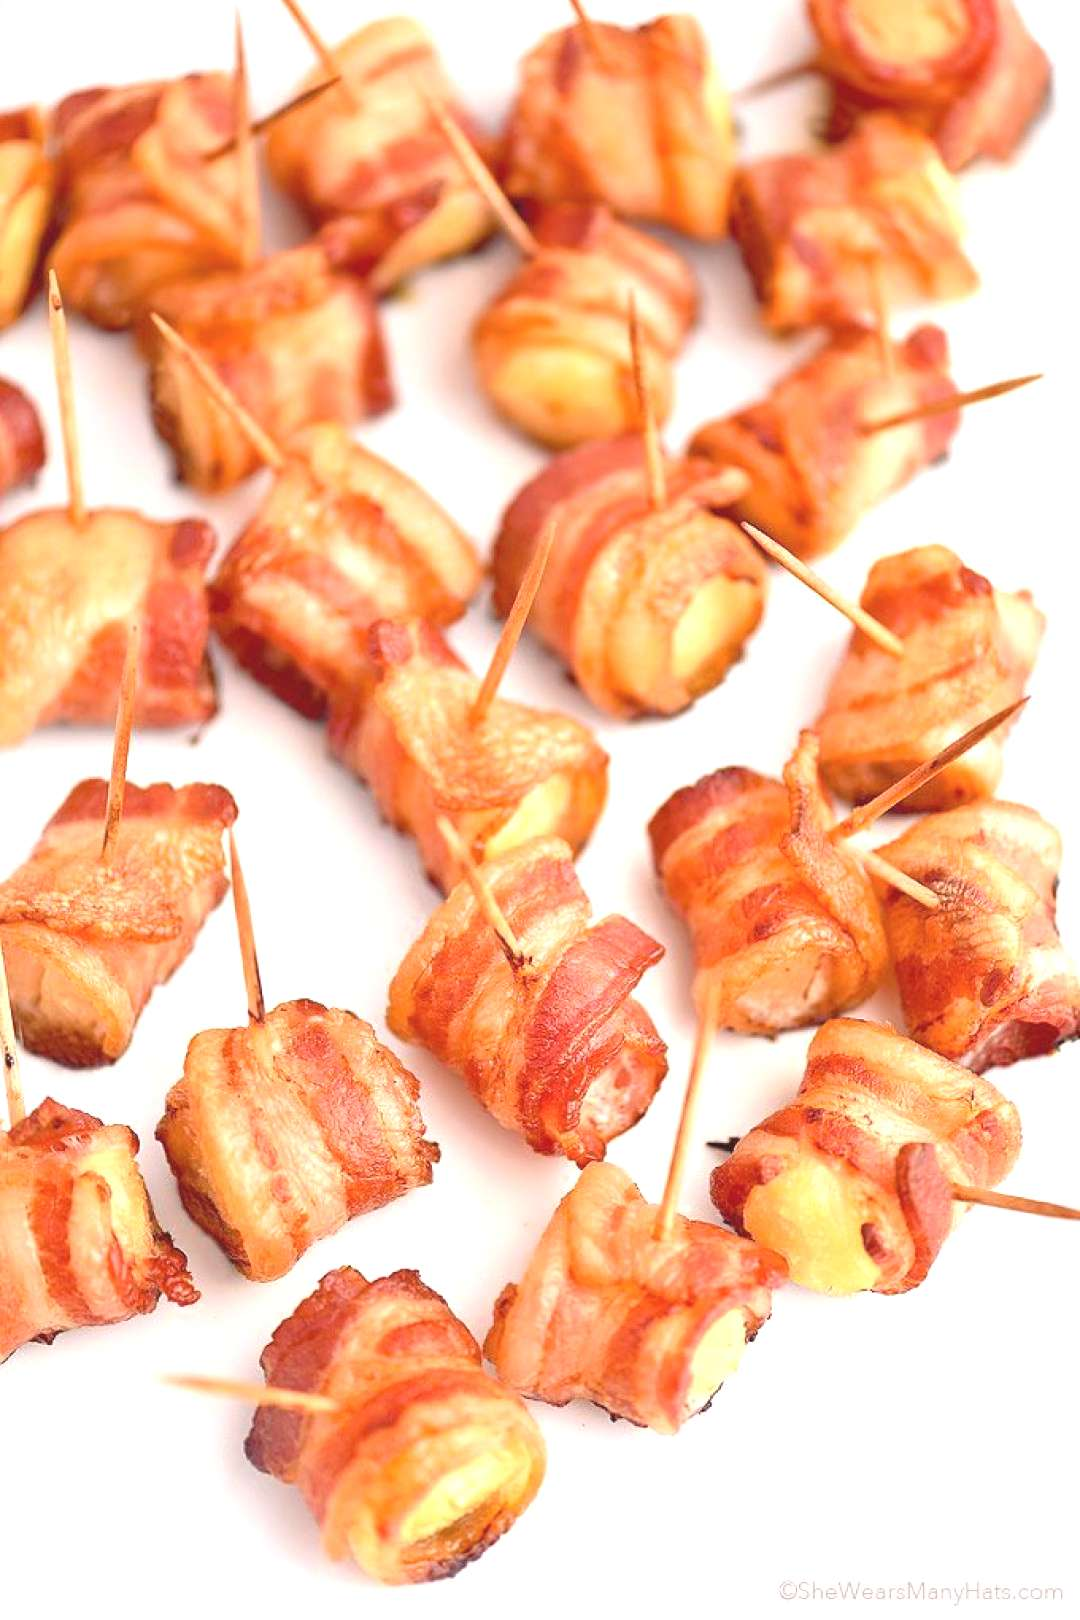 Bacon Wrapped Pineapple Bites Recipe | She Wears Many Hats -  Bacon Wrapped Pineapple Bites Recipe